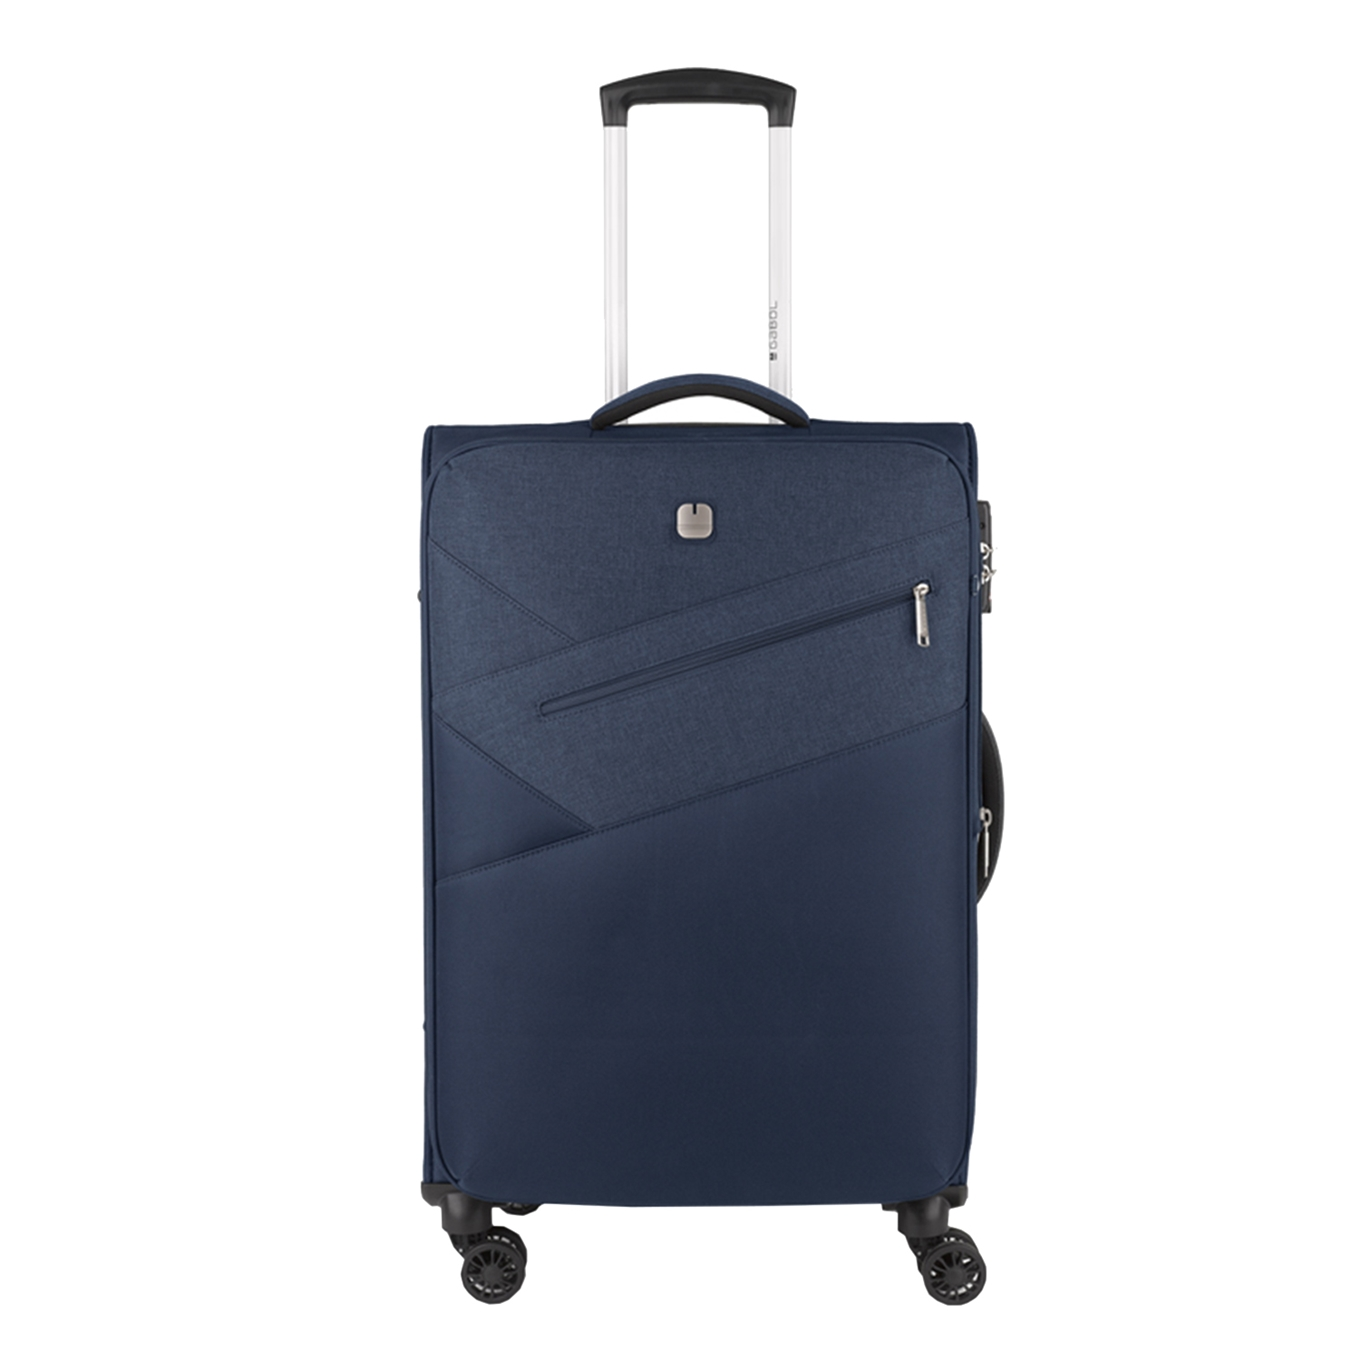 Gabol Mailer Medium Trolley 67 Exp. blue Zachte koffer <br/></noscript><img class=